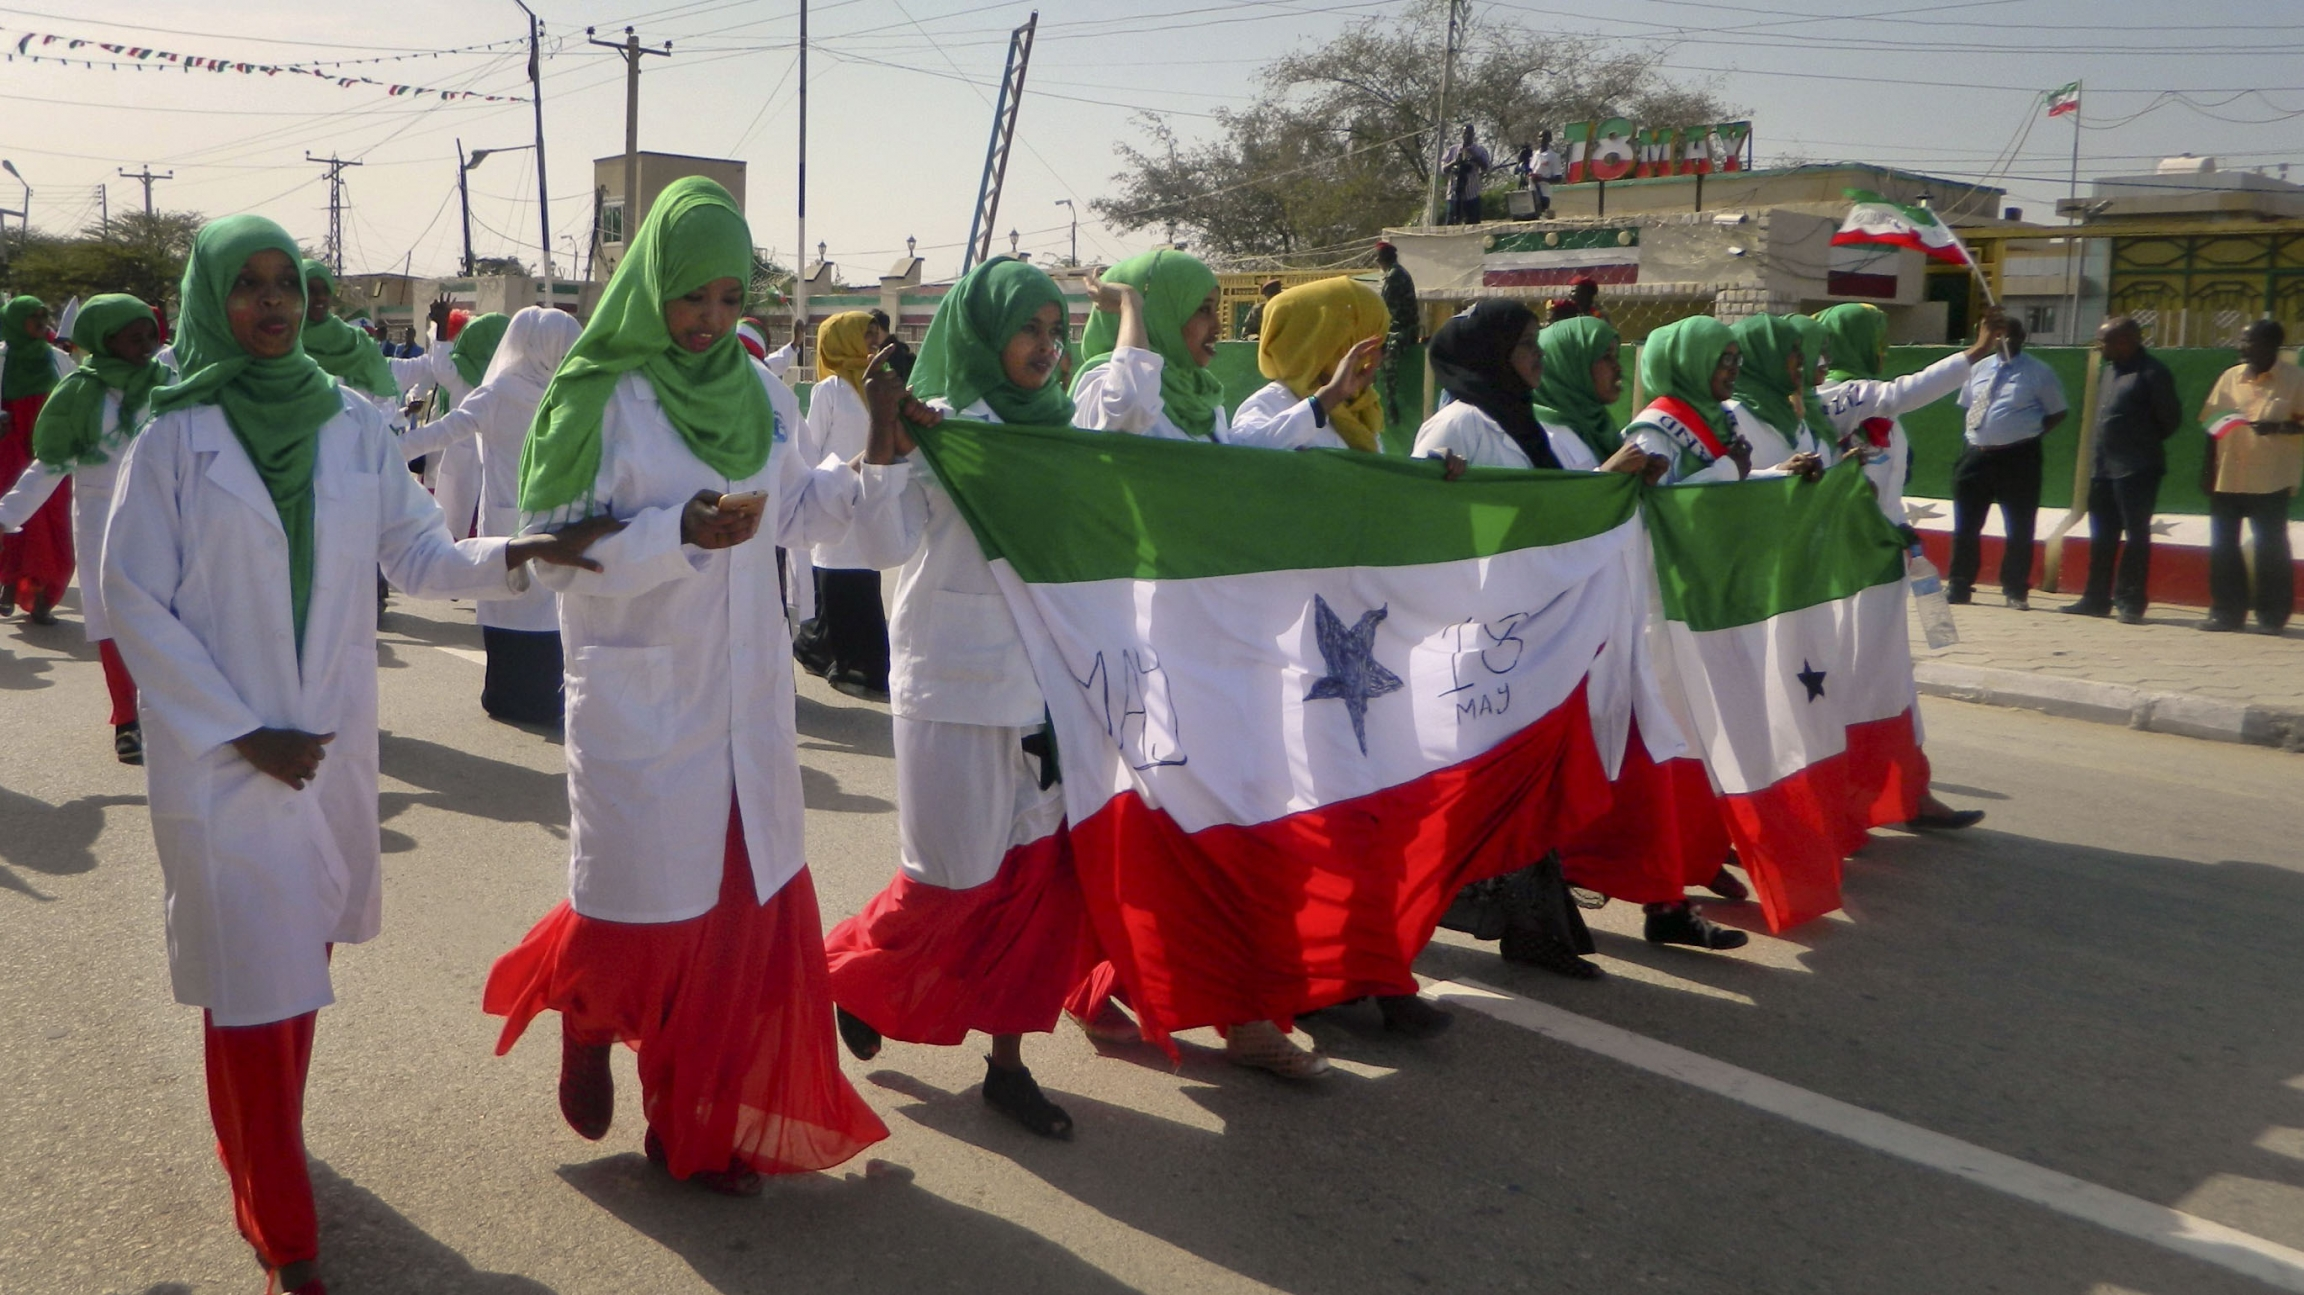 Women wear red, white, and green clothes and march in a parade celebrating independence.